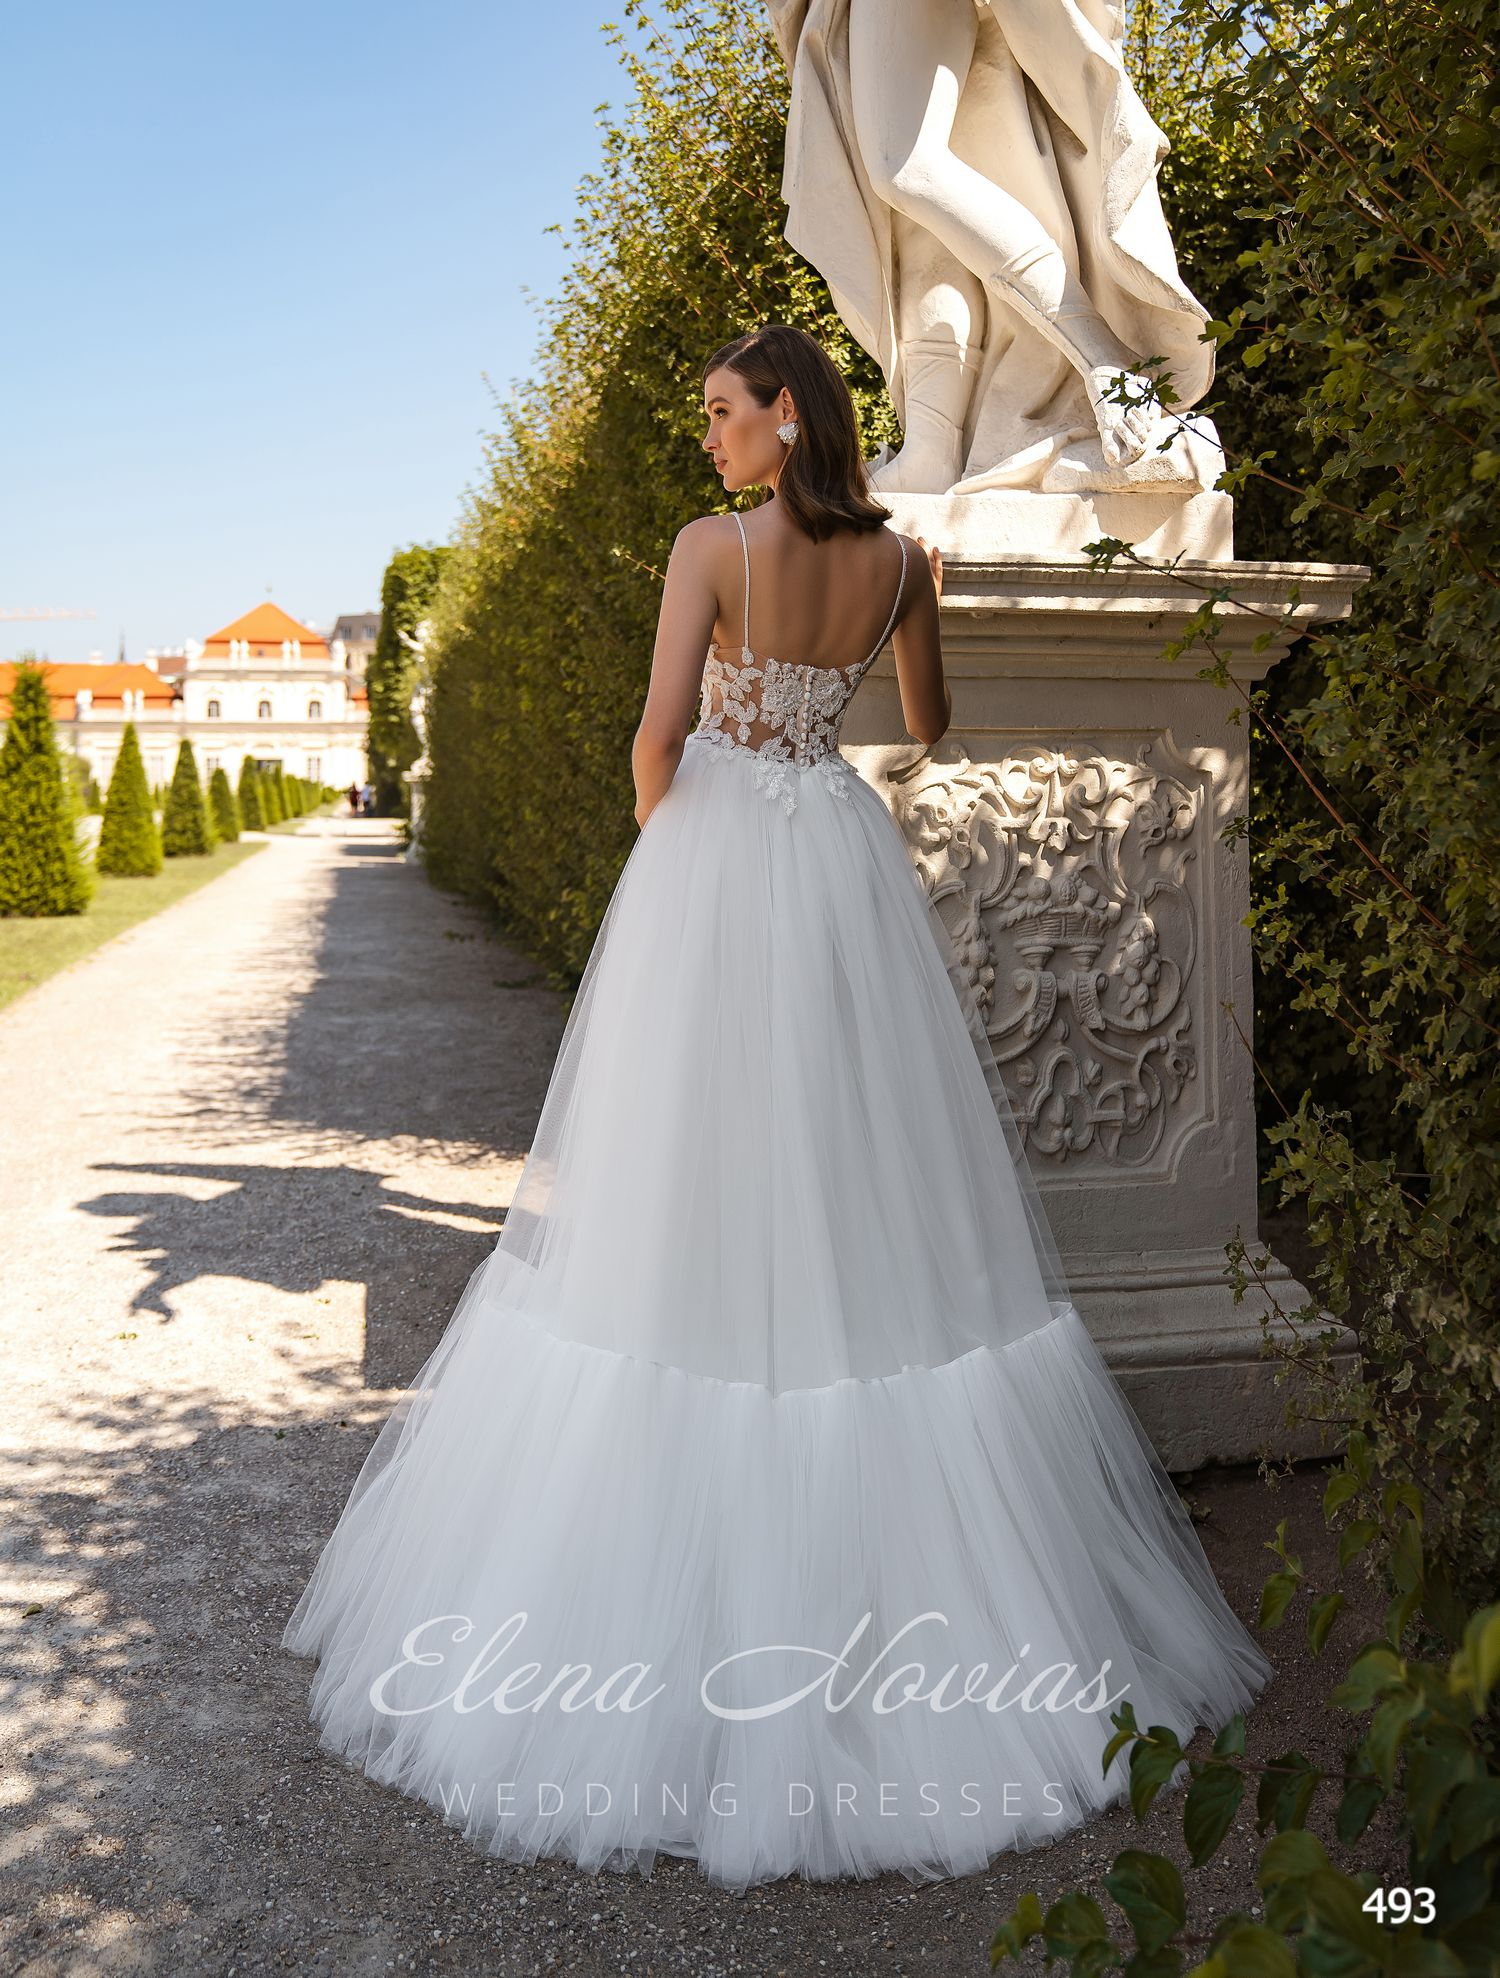 Wedding dresses 493 2